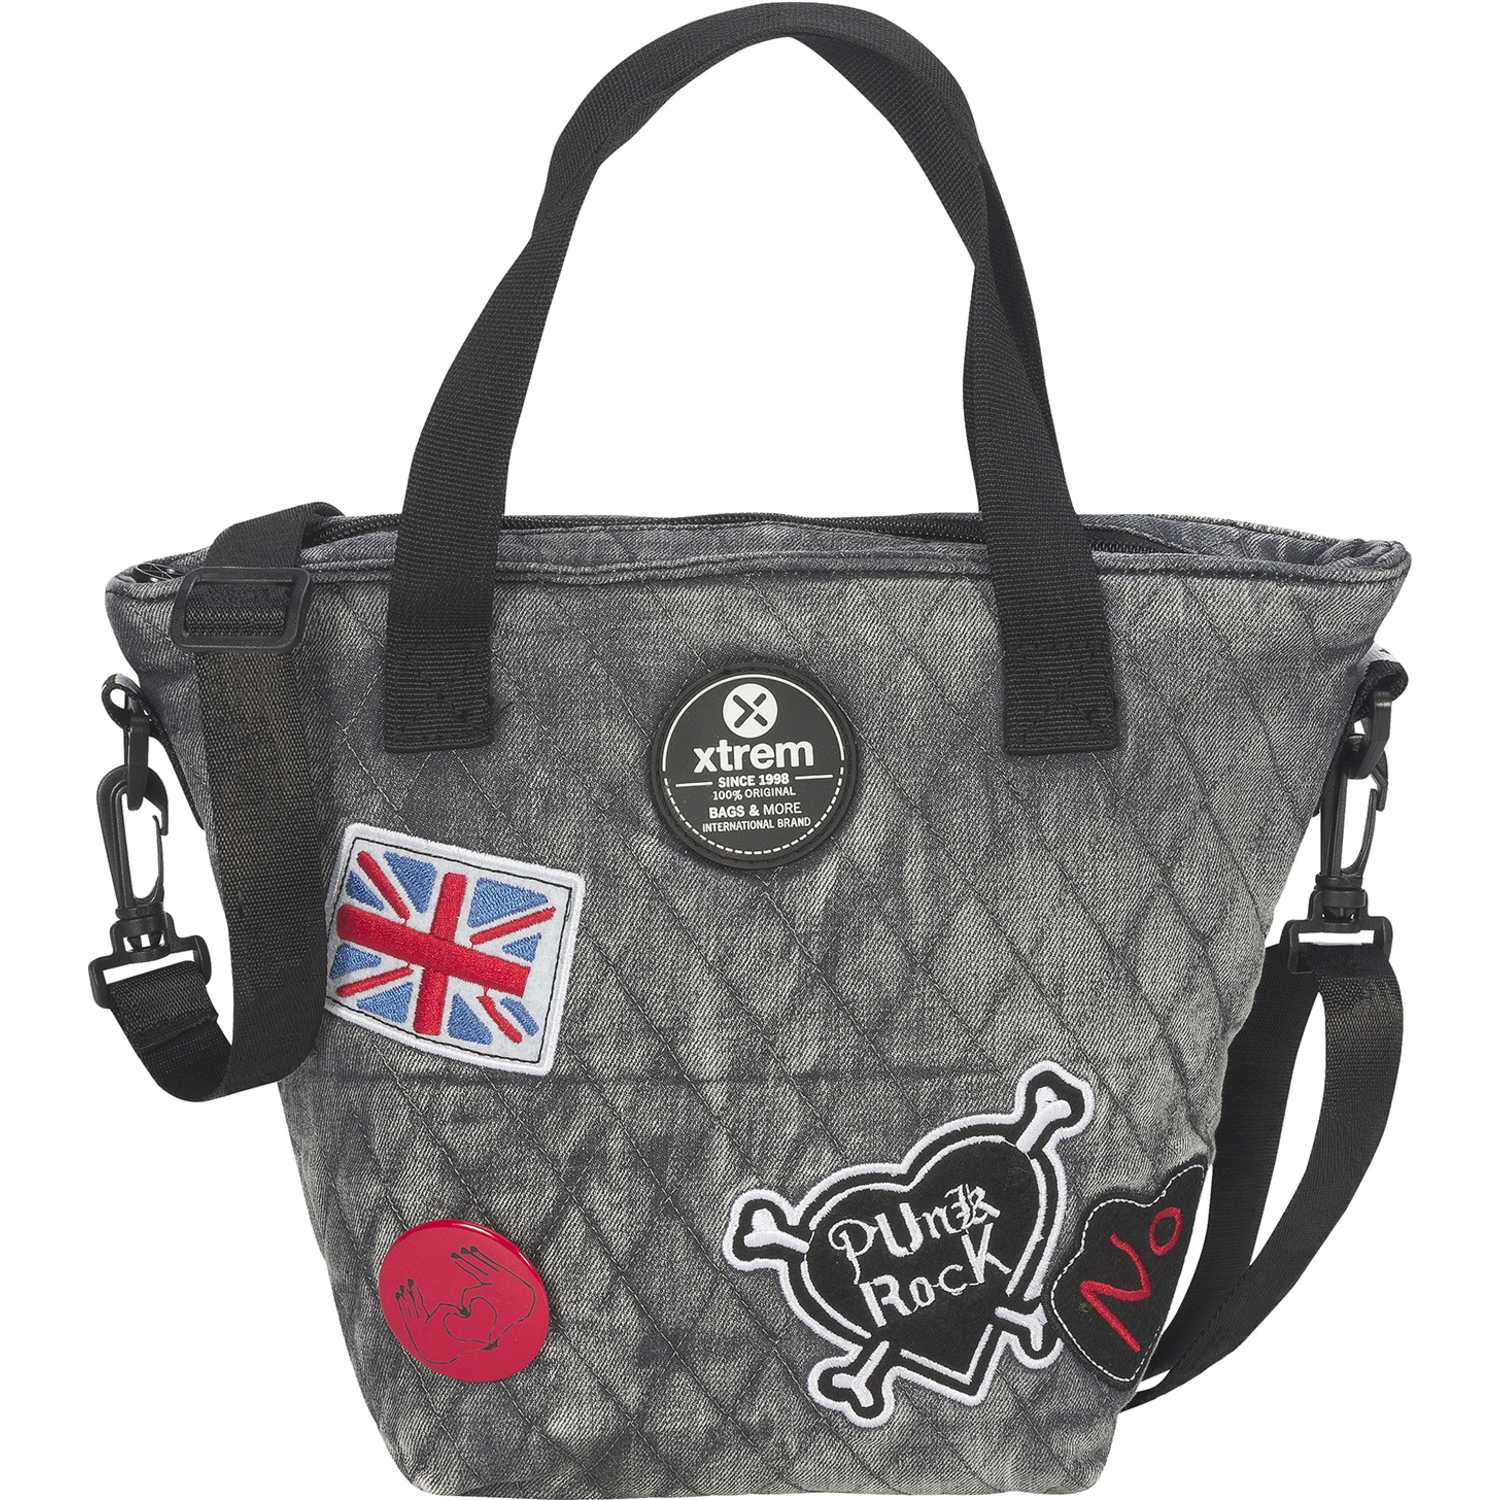 Loncheras de Mujer Xtrem Gris lunch bag grey patches tote 847